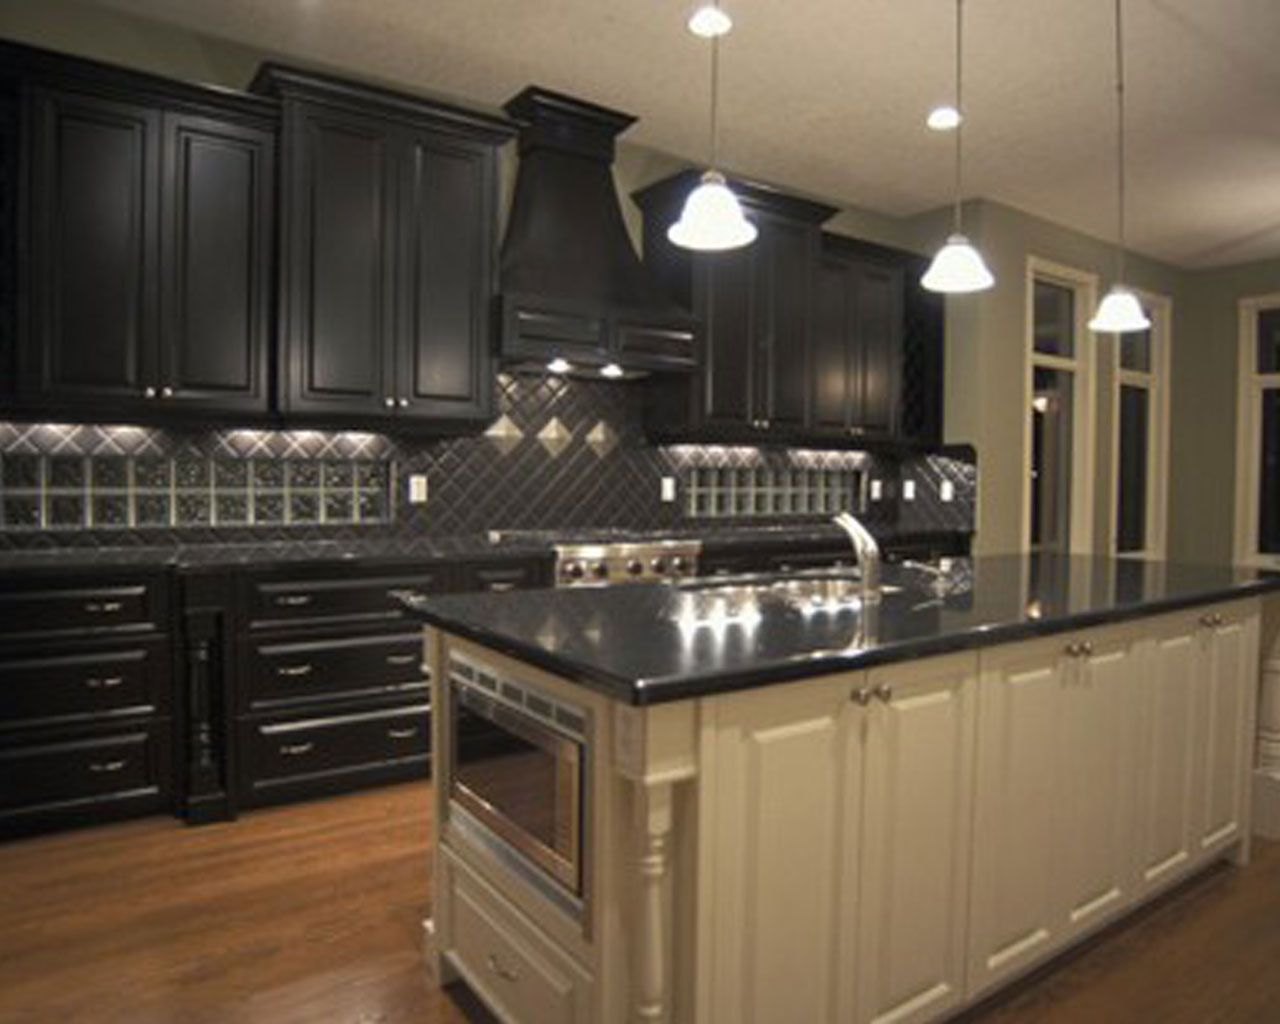 New Kitchen Dark Cabinets finest design black kitchen cabinets wallpapers | new house